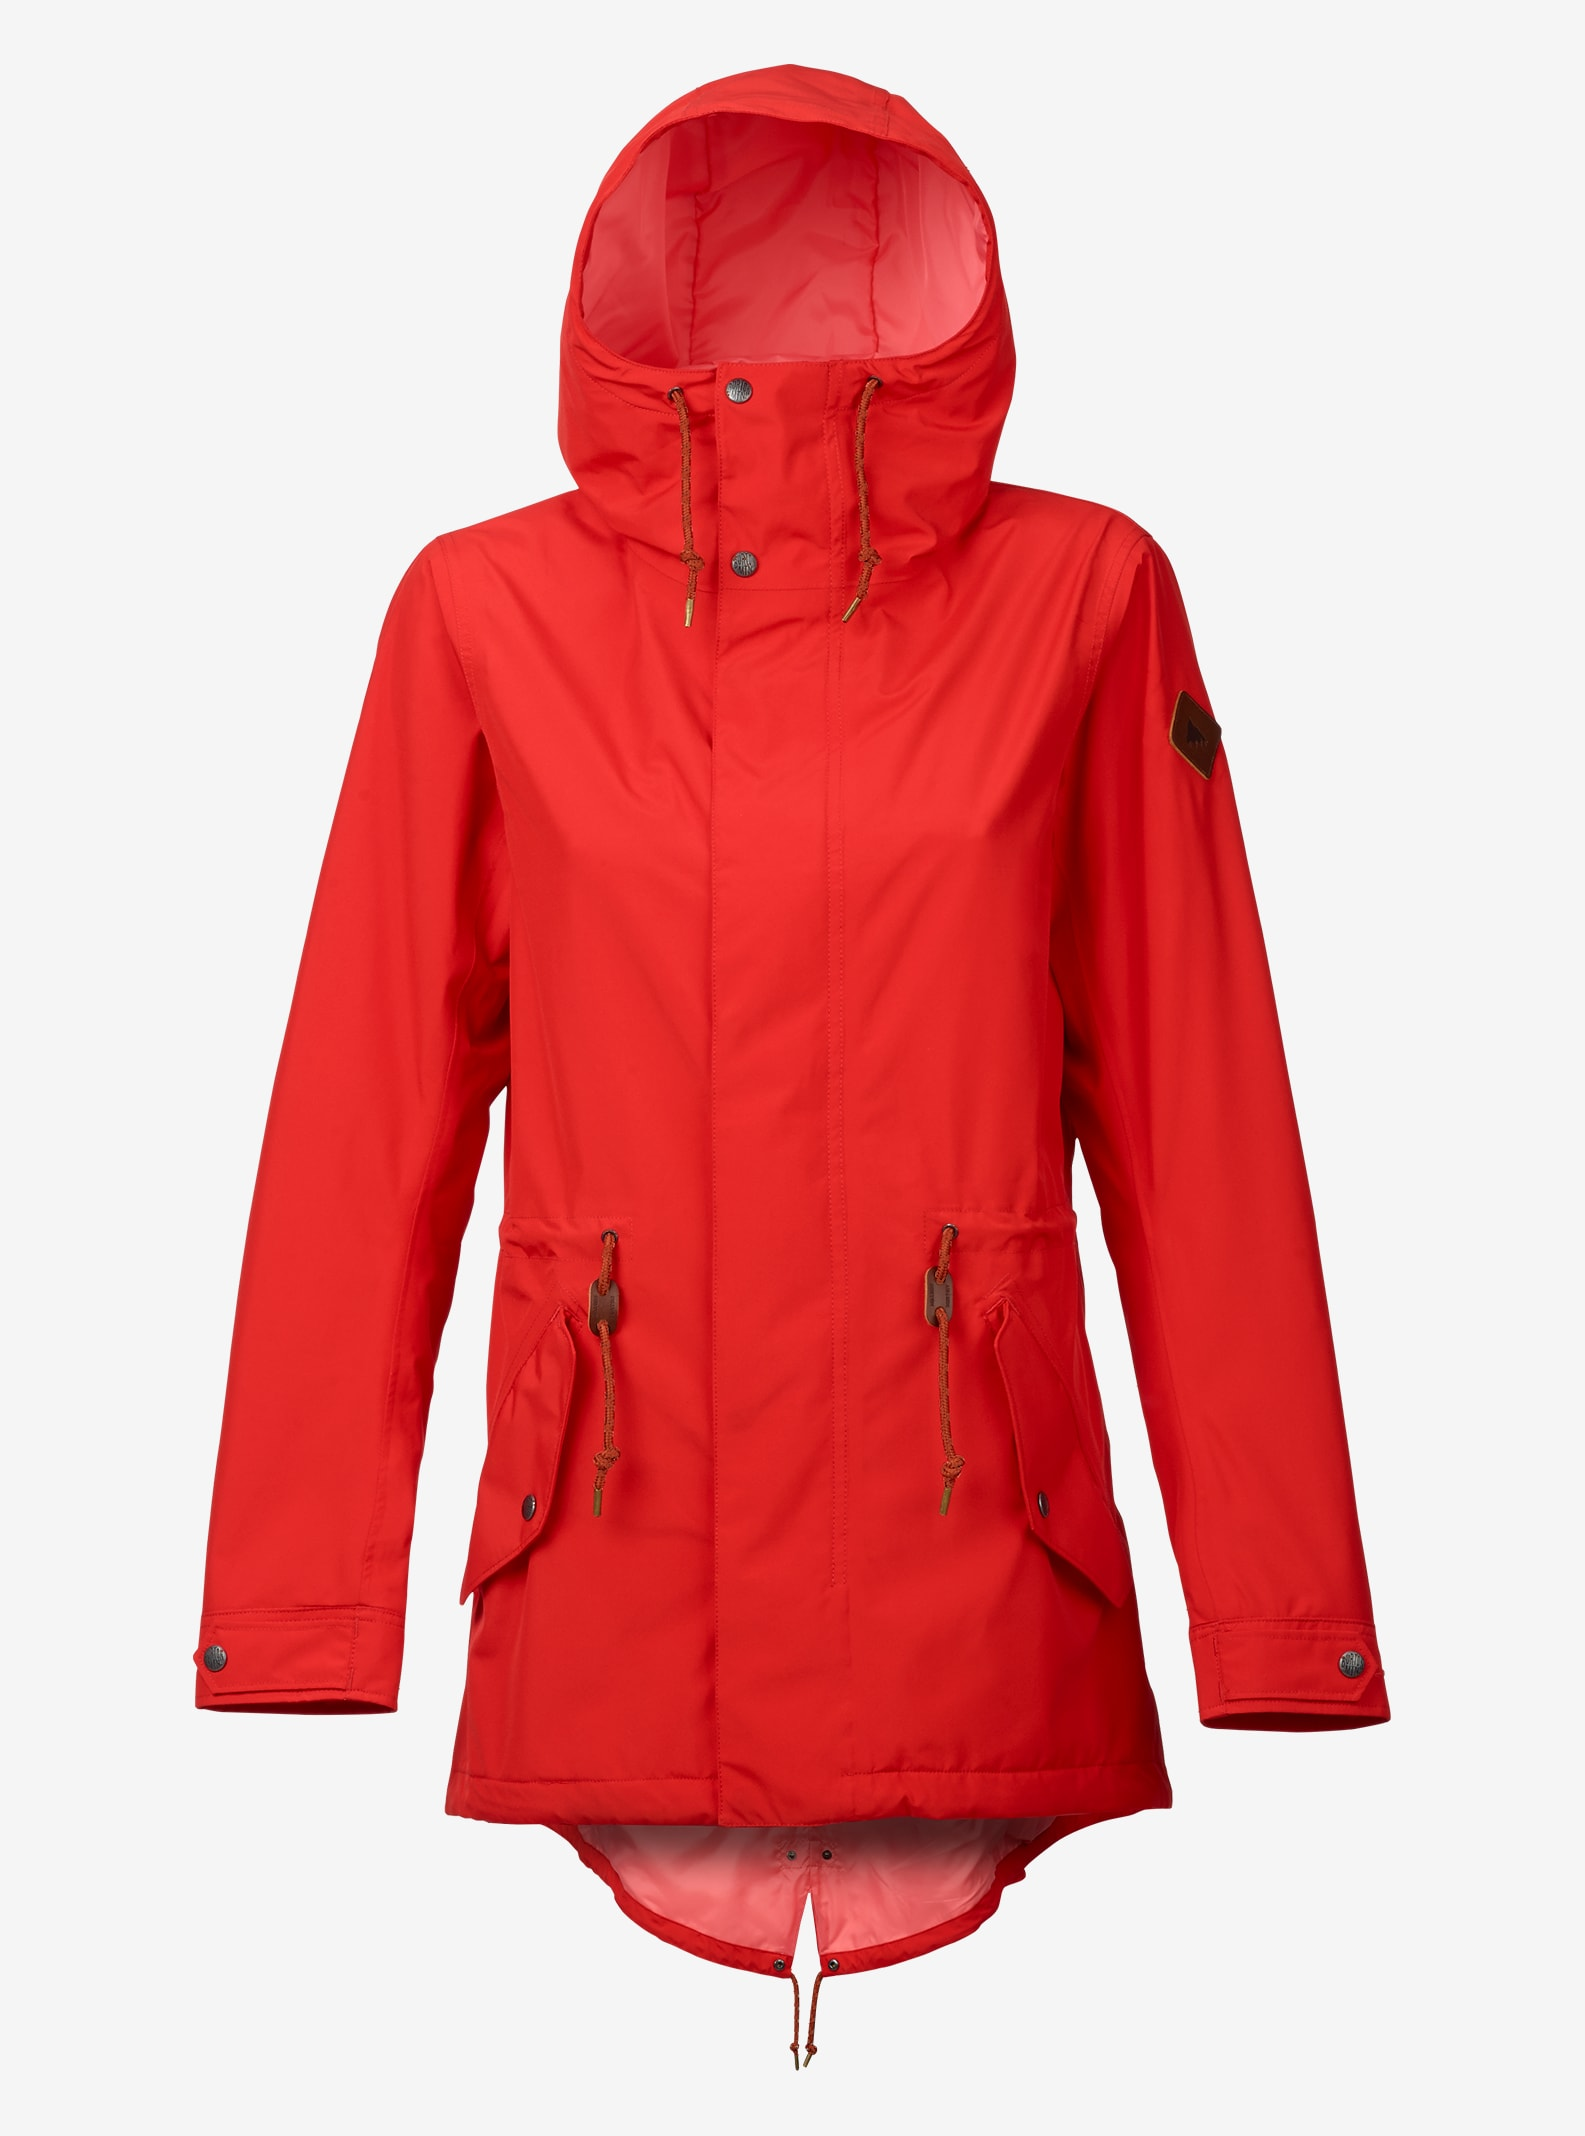 Burton Sadie Rain Jacket shown in Coral